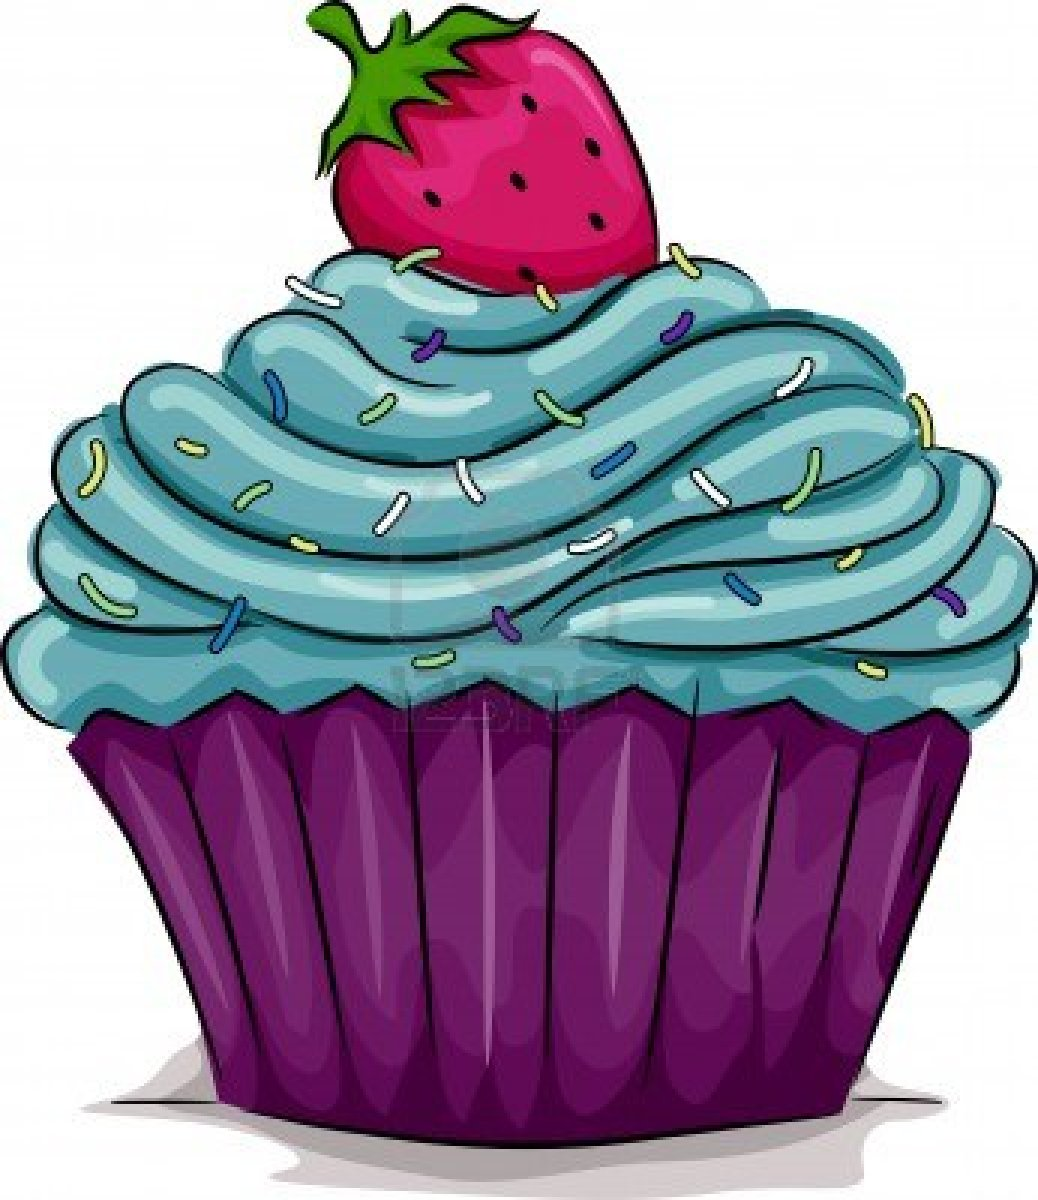 Illustration Of A Cupcake With A Strawberry On Top   Free Images At